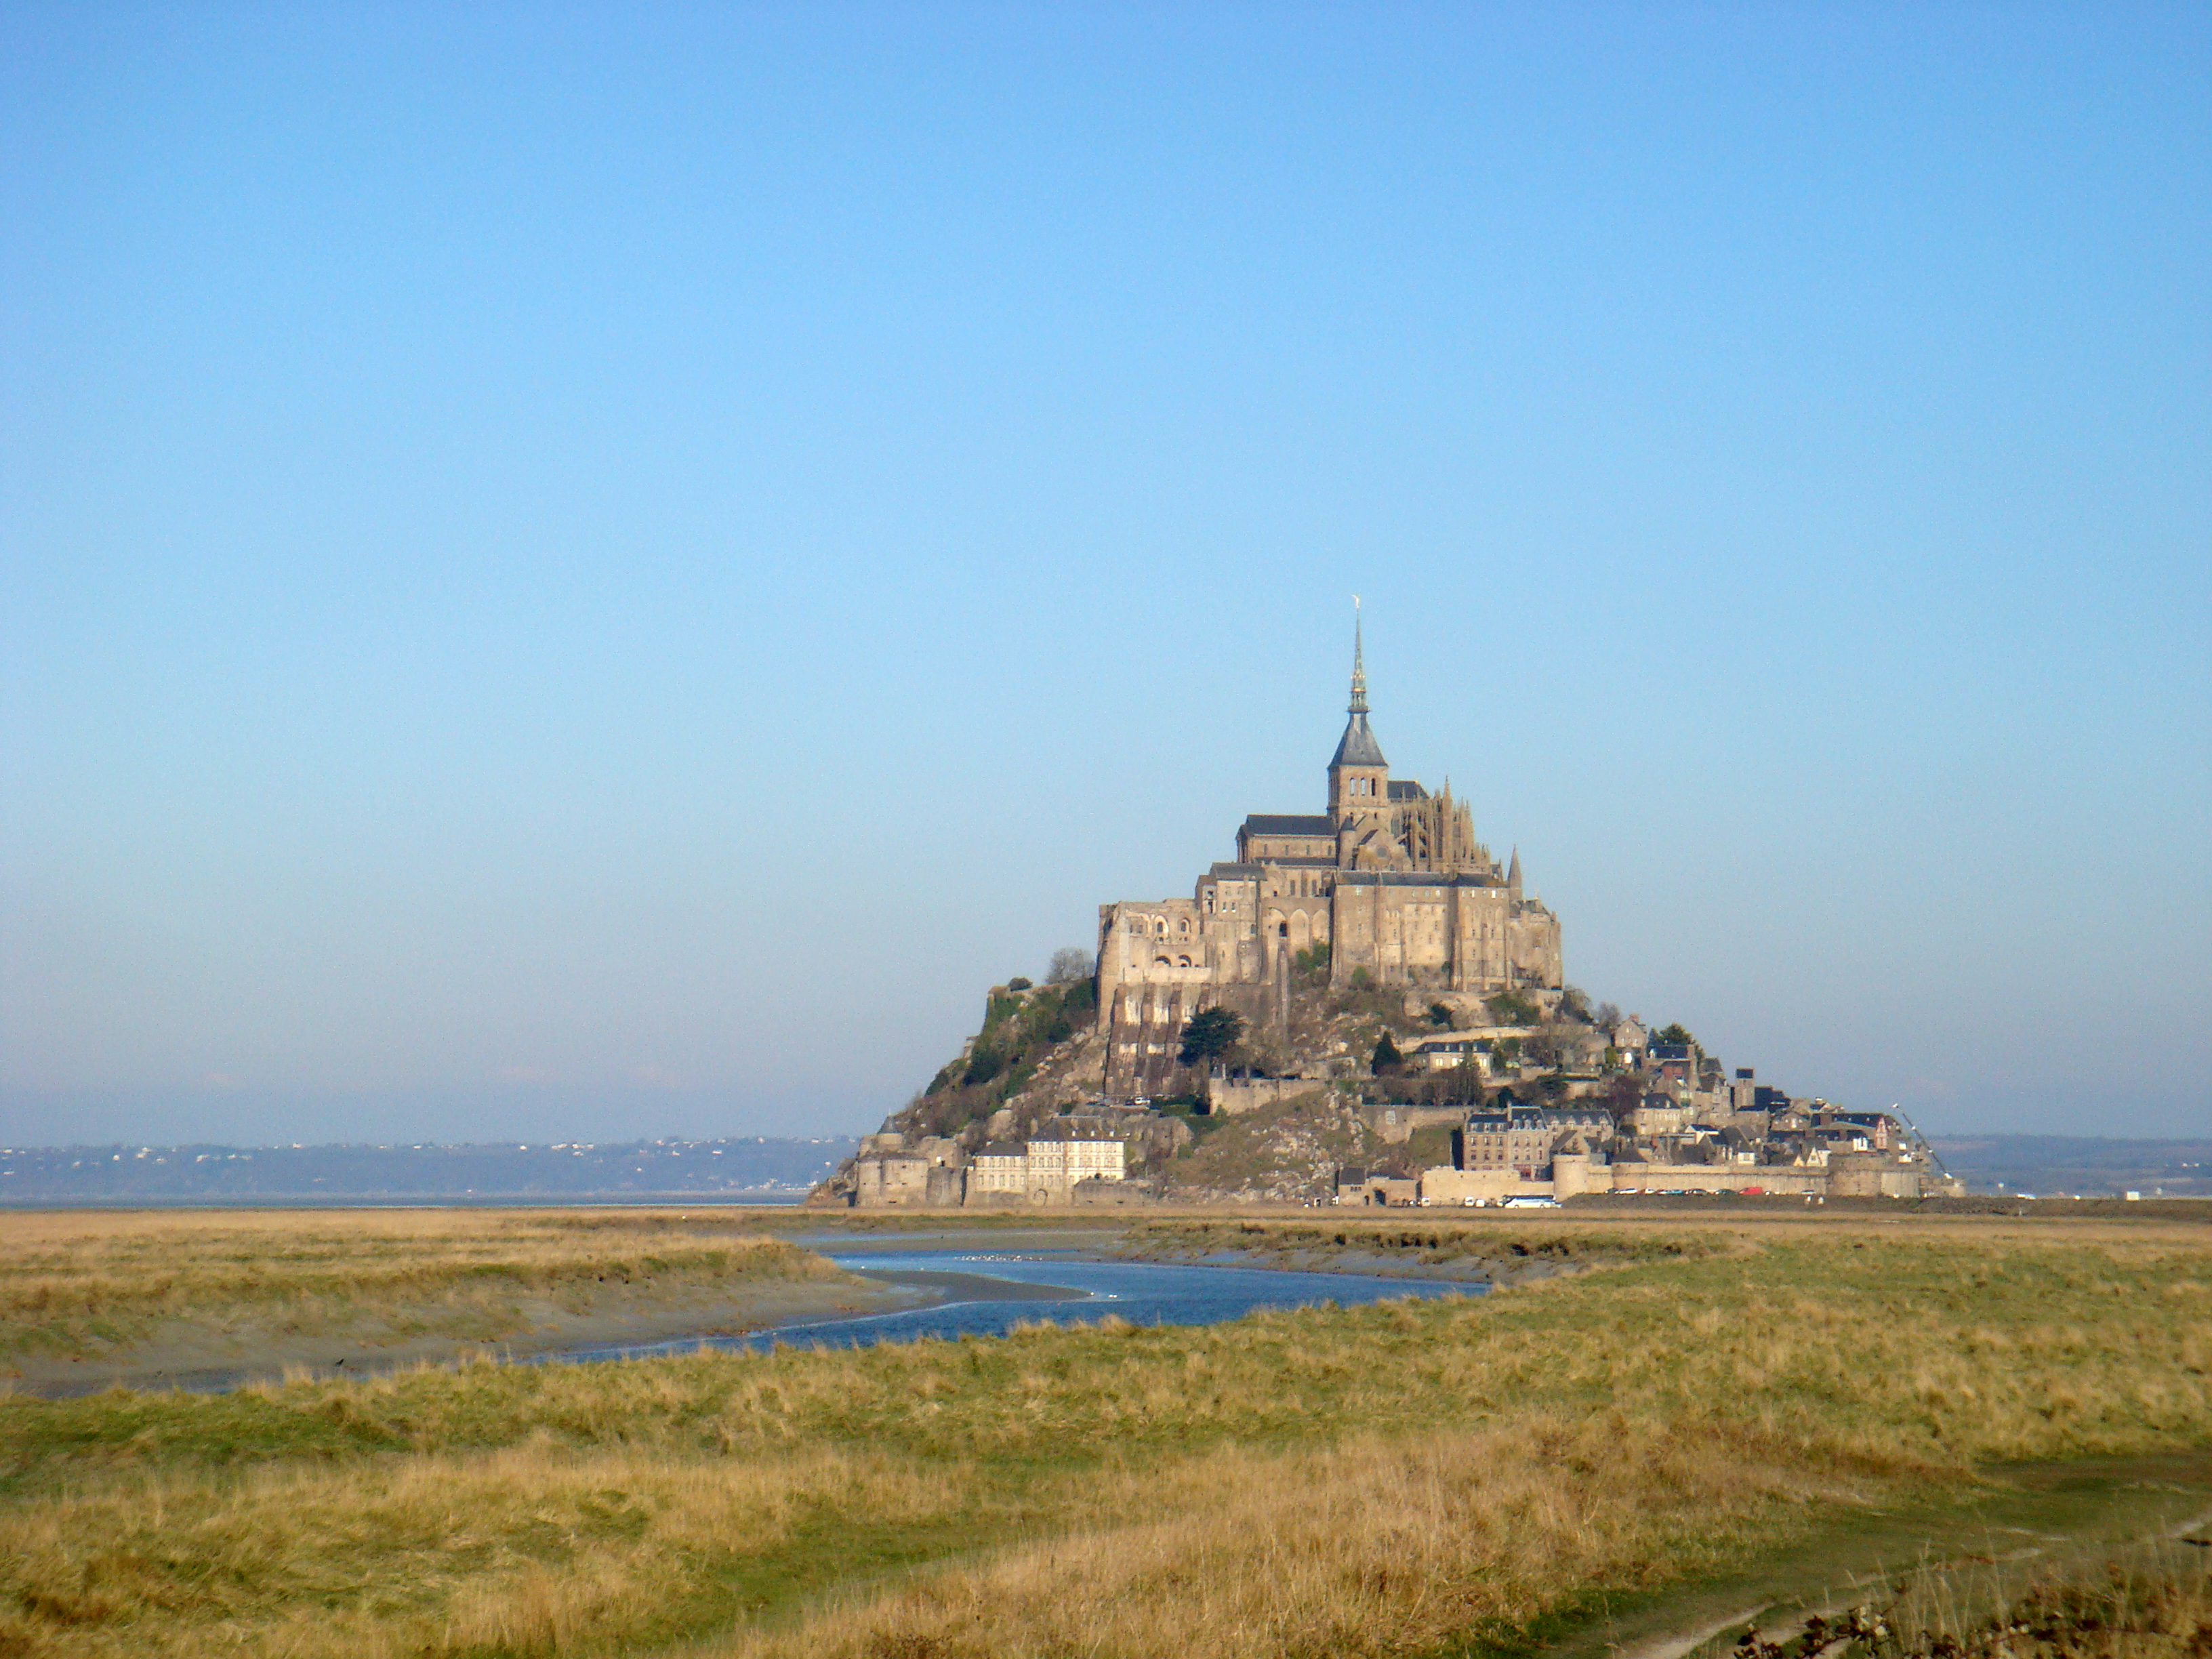 http://upload.wikimedia.org/wikipedia/commons/1/15/Mont_Saint_Michel_2009.JPG